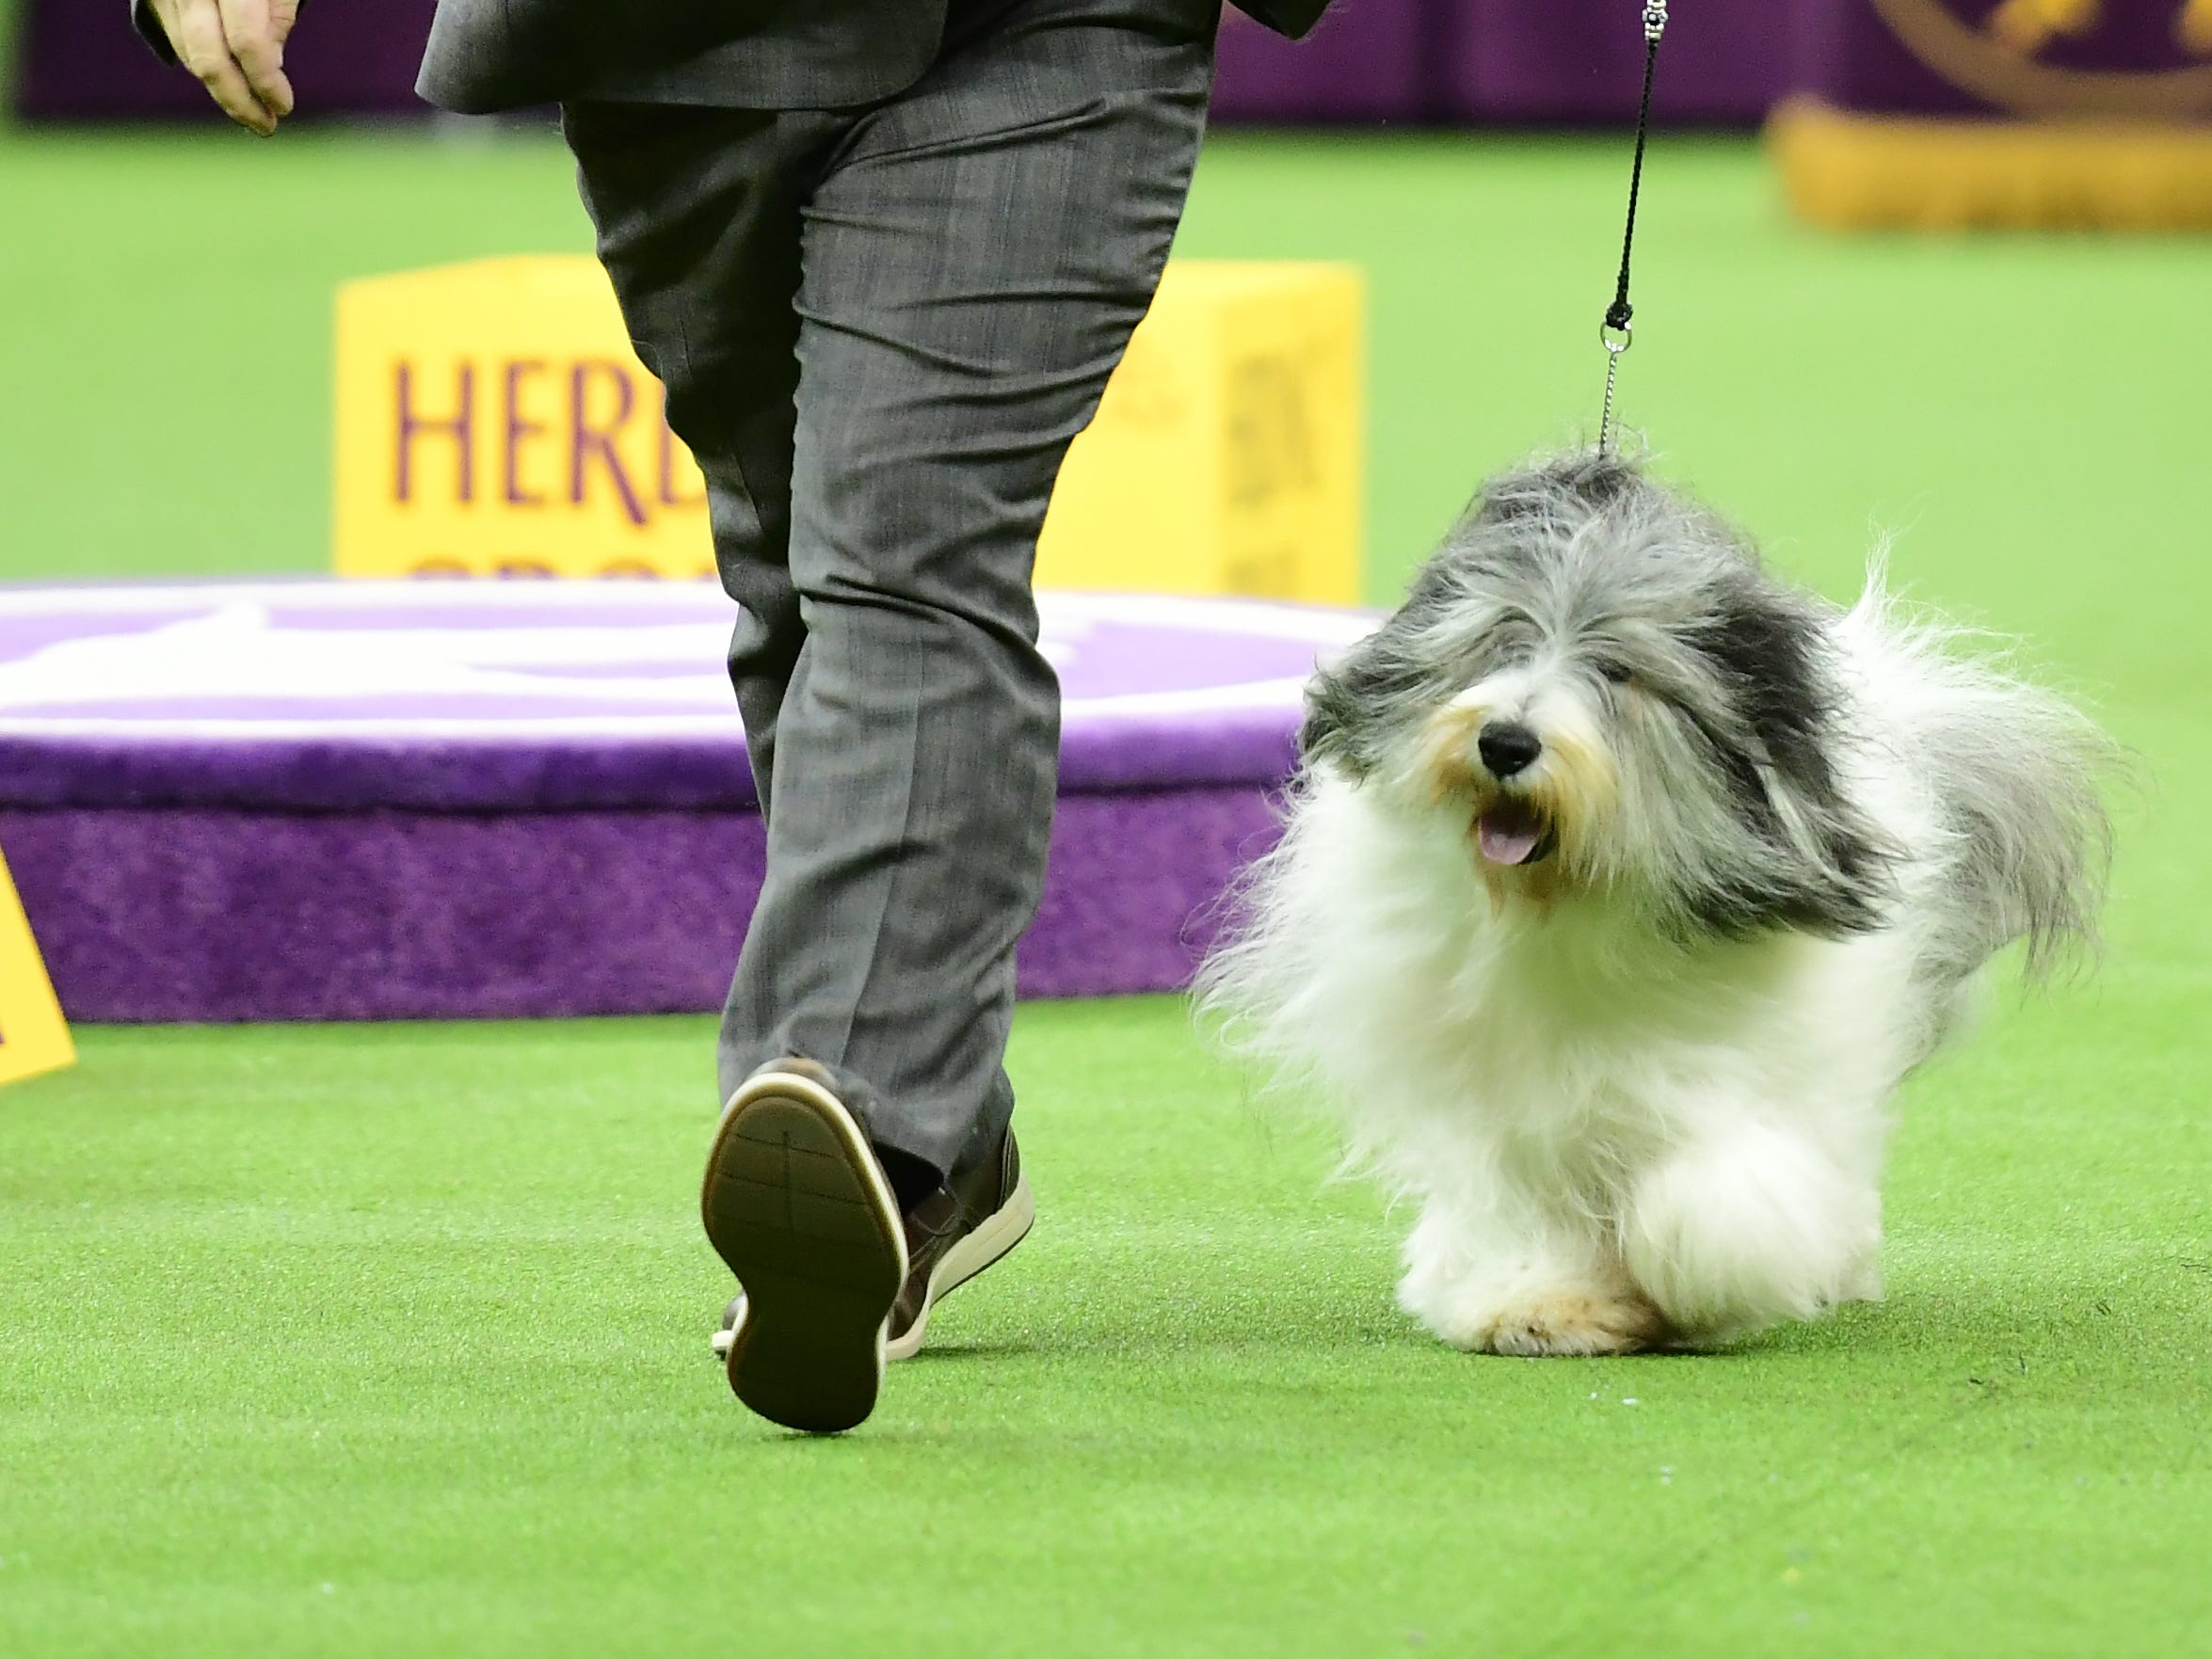 The Polish Lowland Sheepdog and trainer competes during the Herding Group judging at the 143rd Westminster Kennel Club Dog Show.